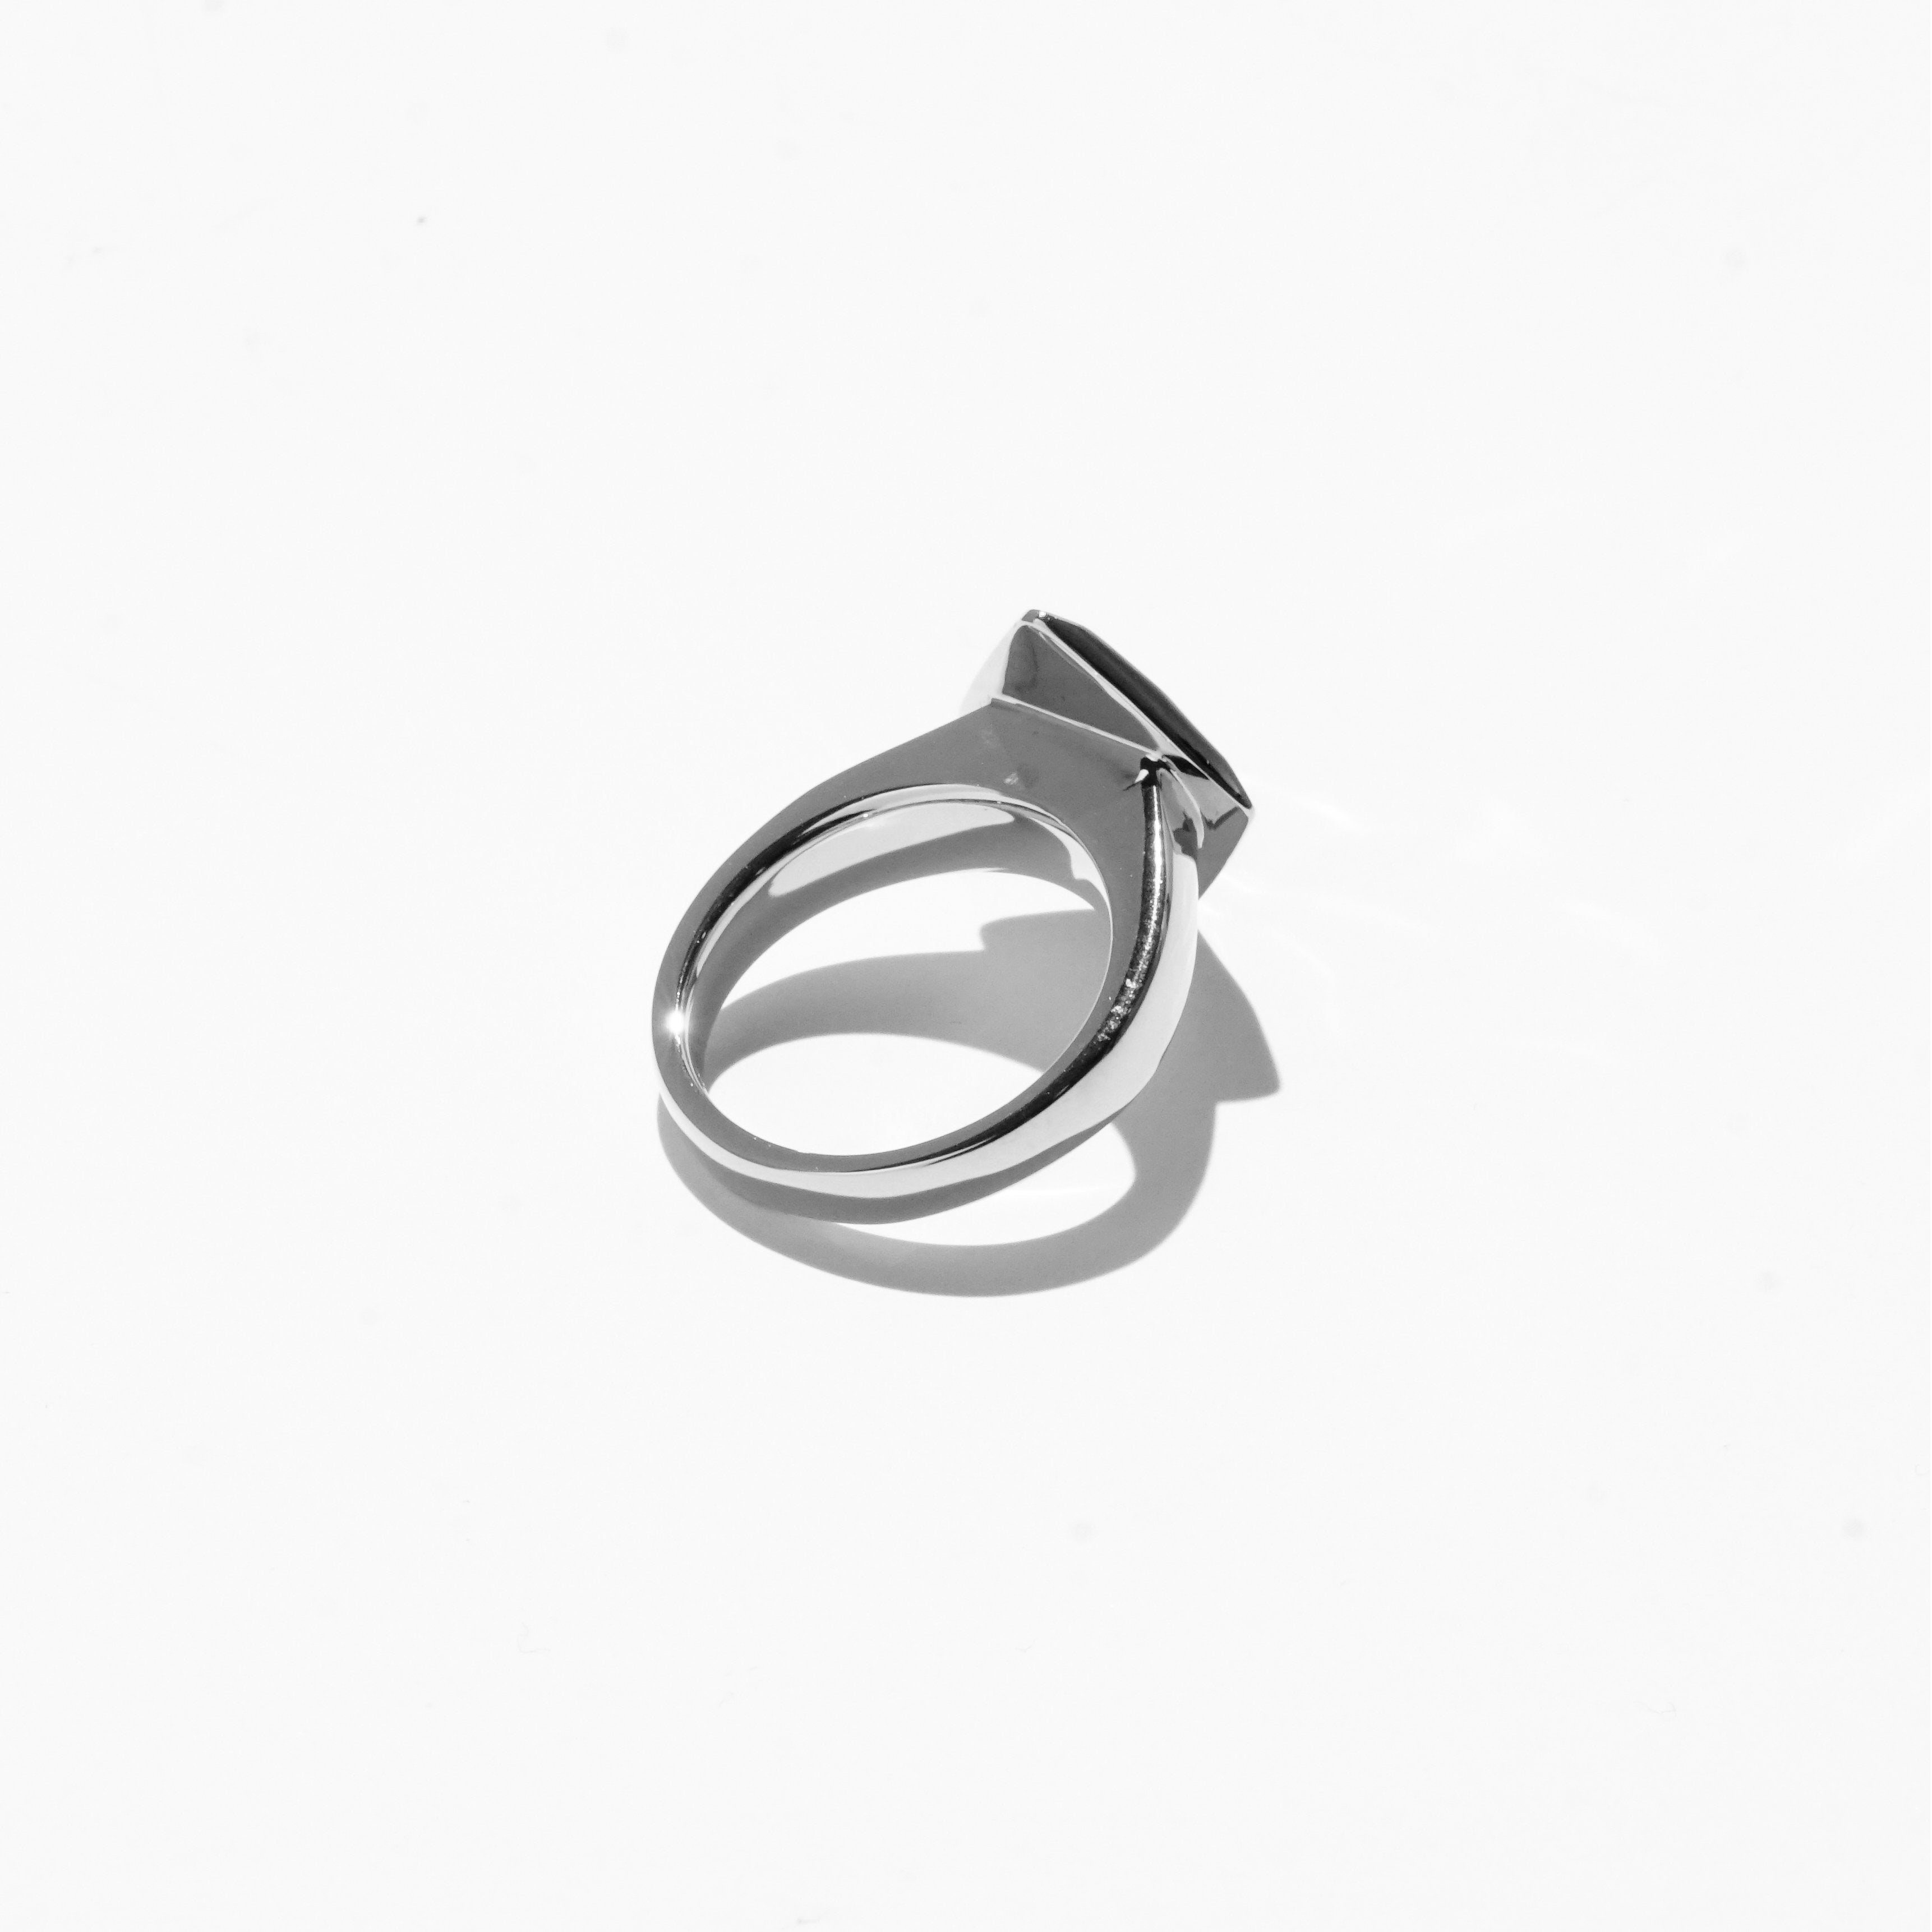 Rings - Diamond Cut Jelly Ring - Silver